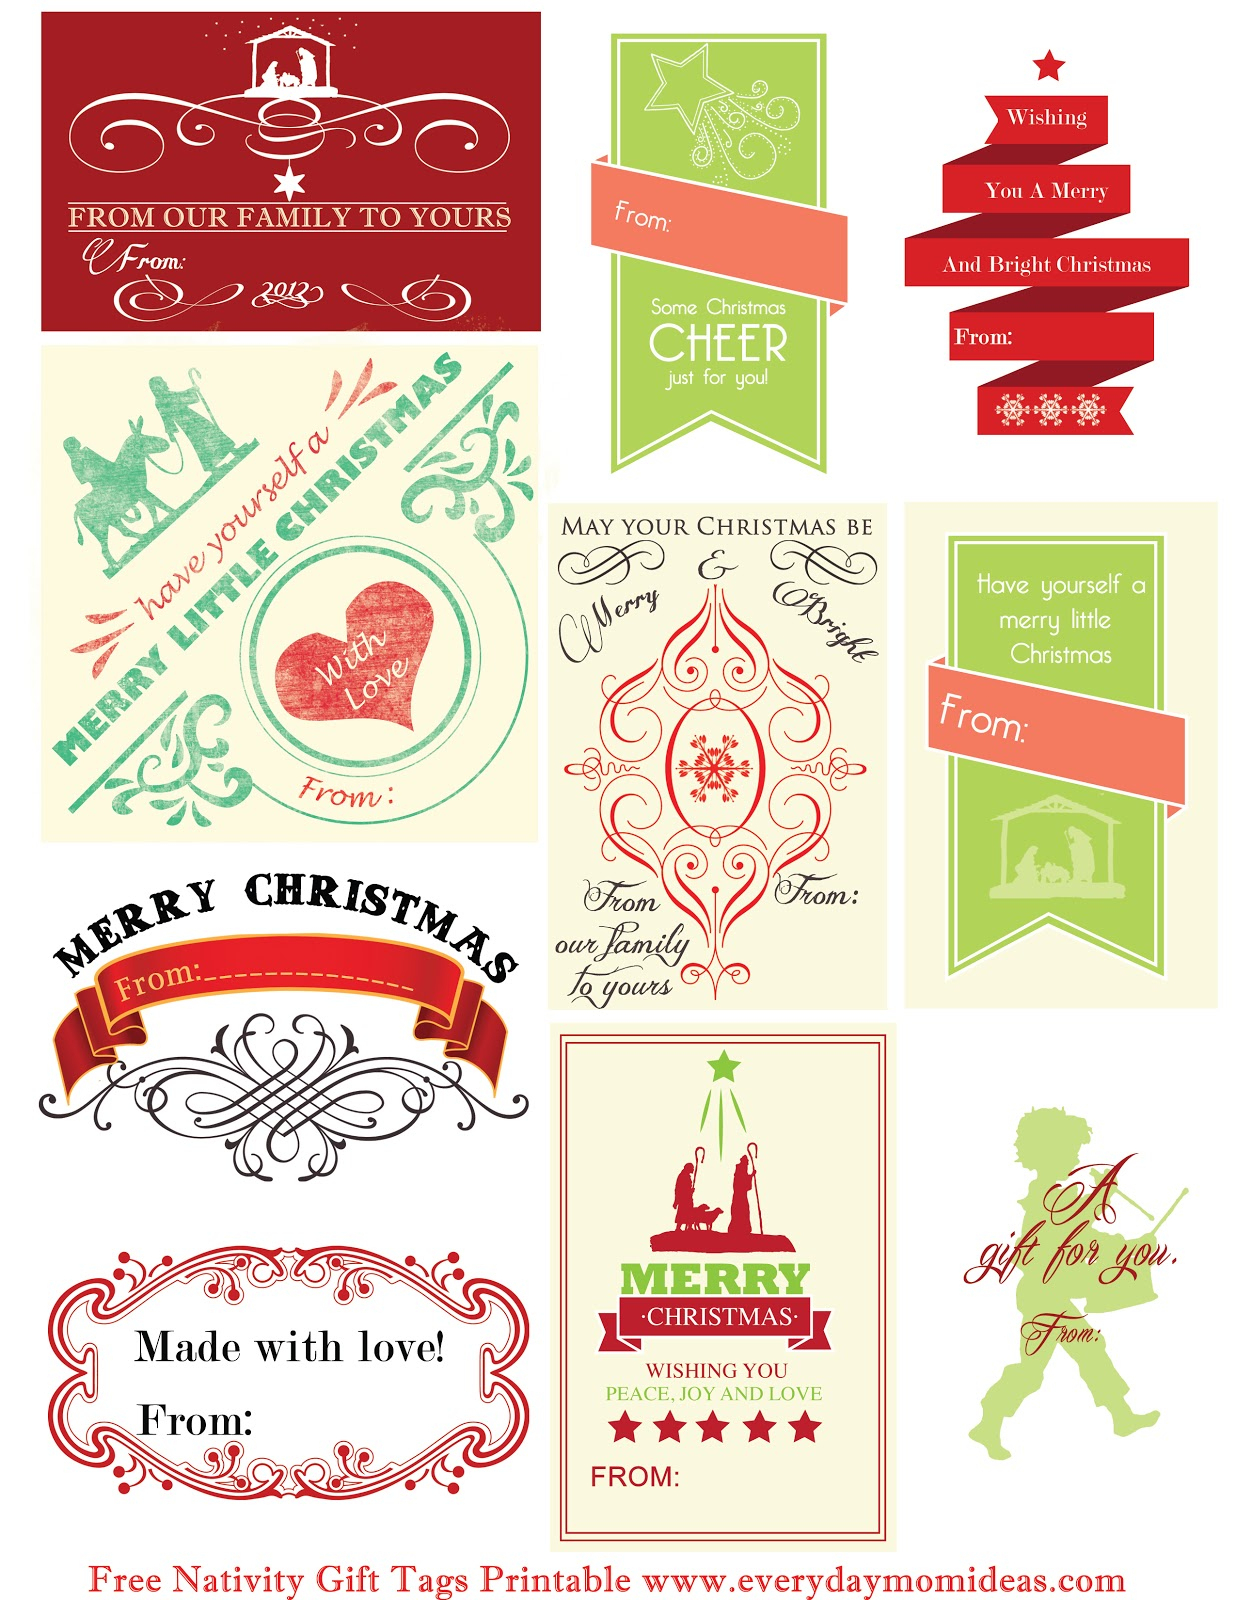 Free Nativity Gift Tags Printable - Everyday Mom Ideas - Free Printable Gift Tags Personalized